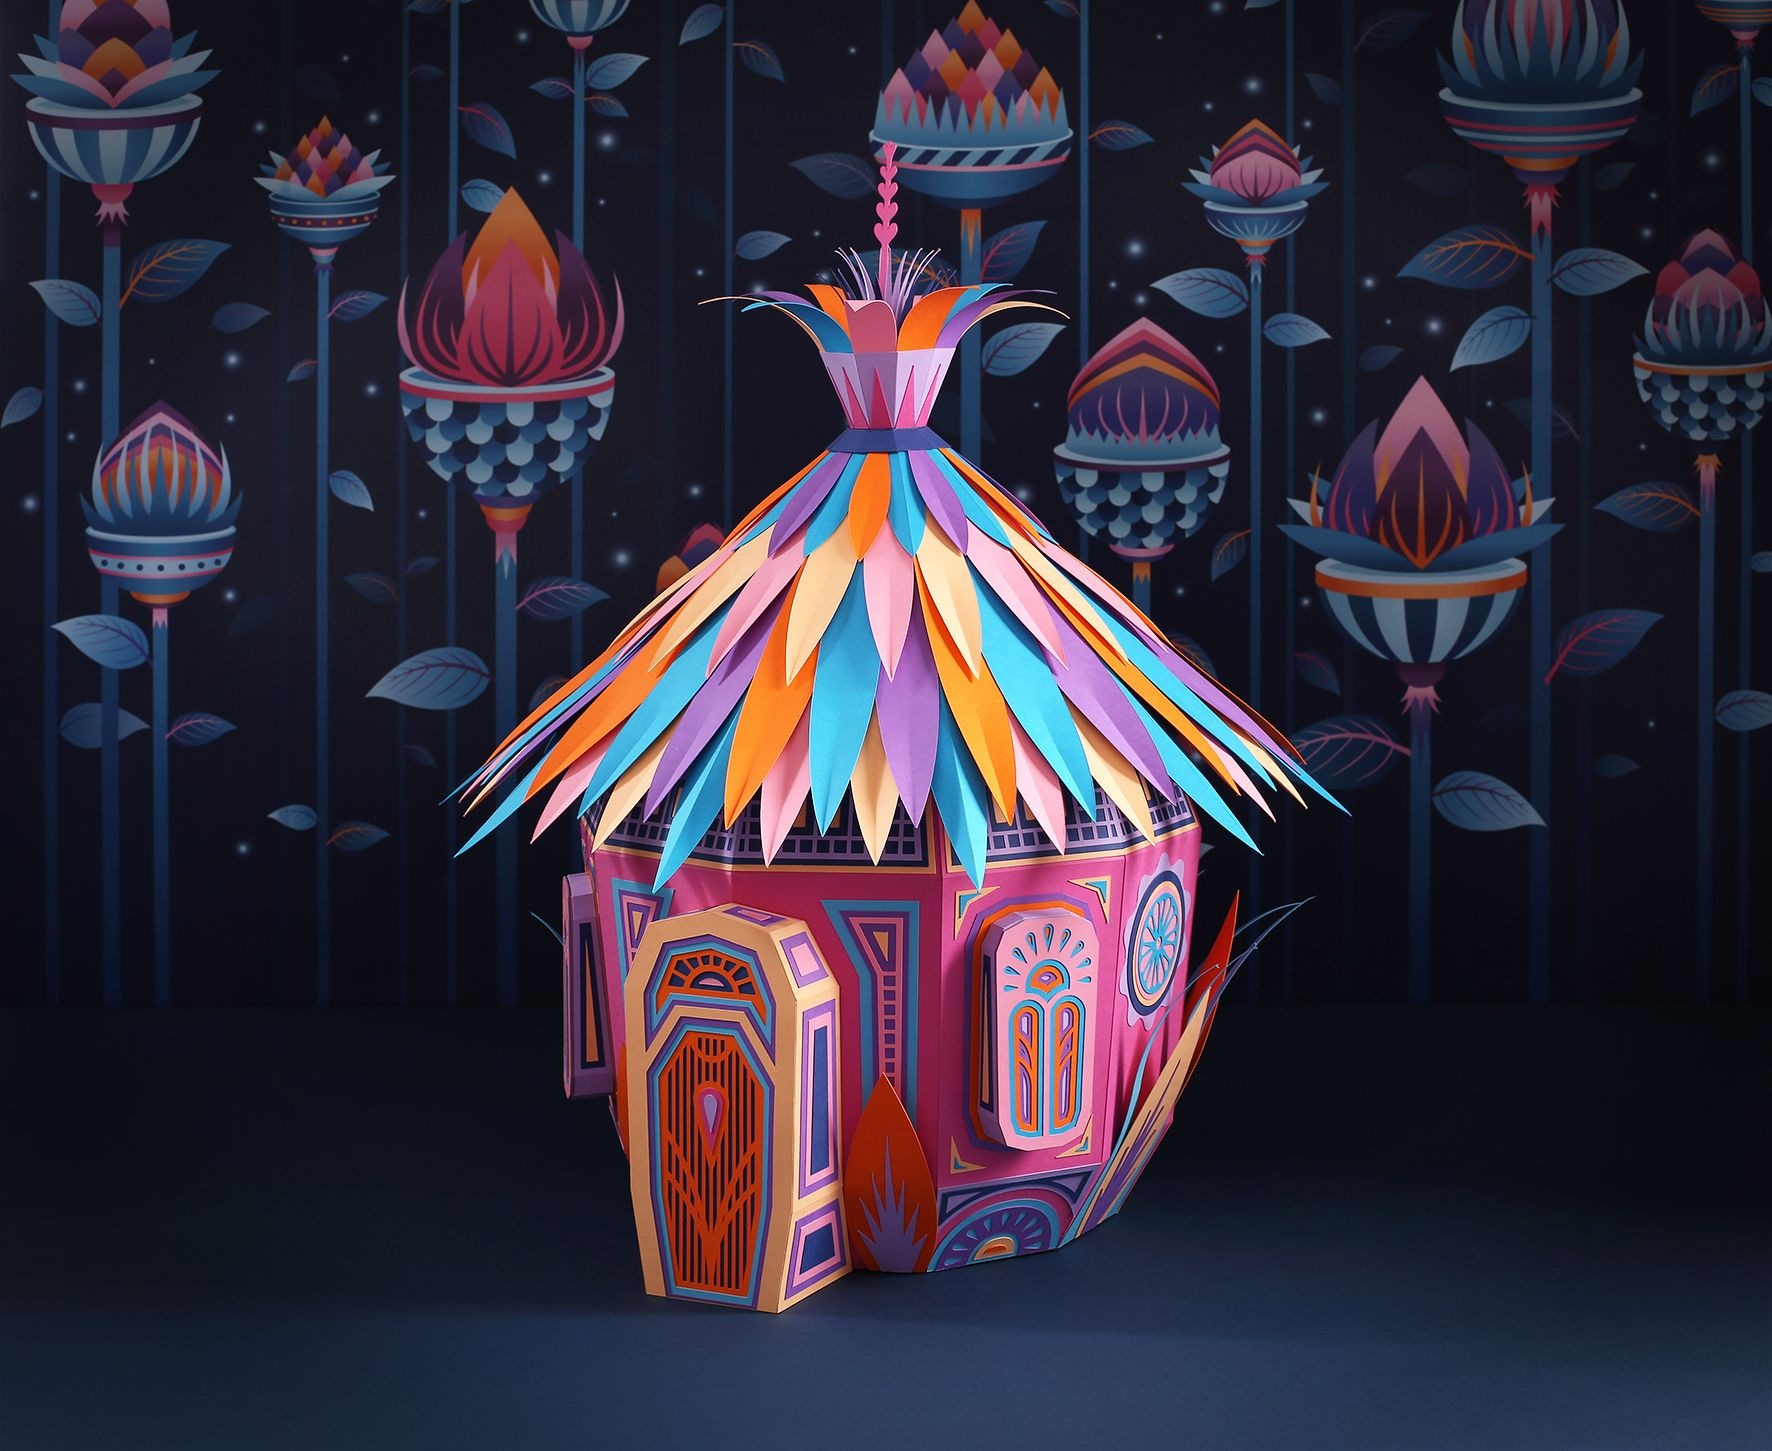 Color art dubai - Fantastic Miniature Worlds Of Nature Bursting With Color For Herm S Window Display In Dubai Floral